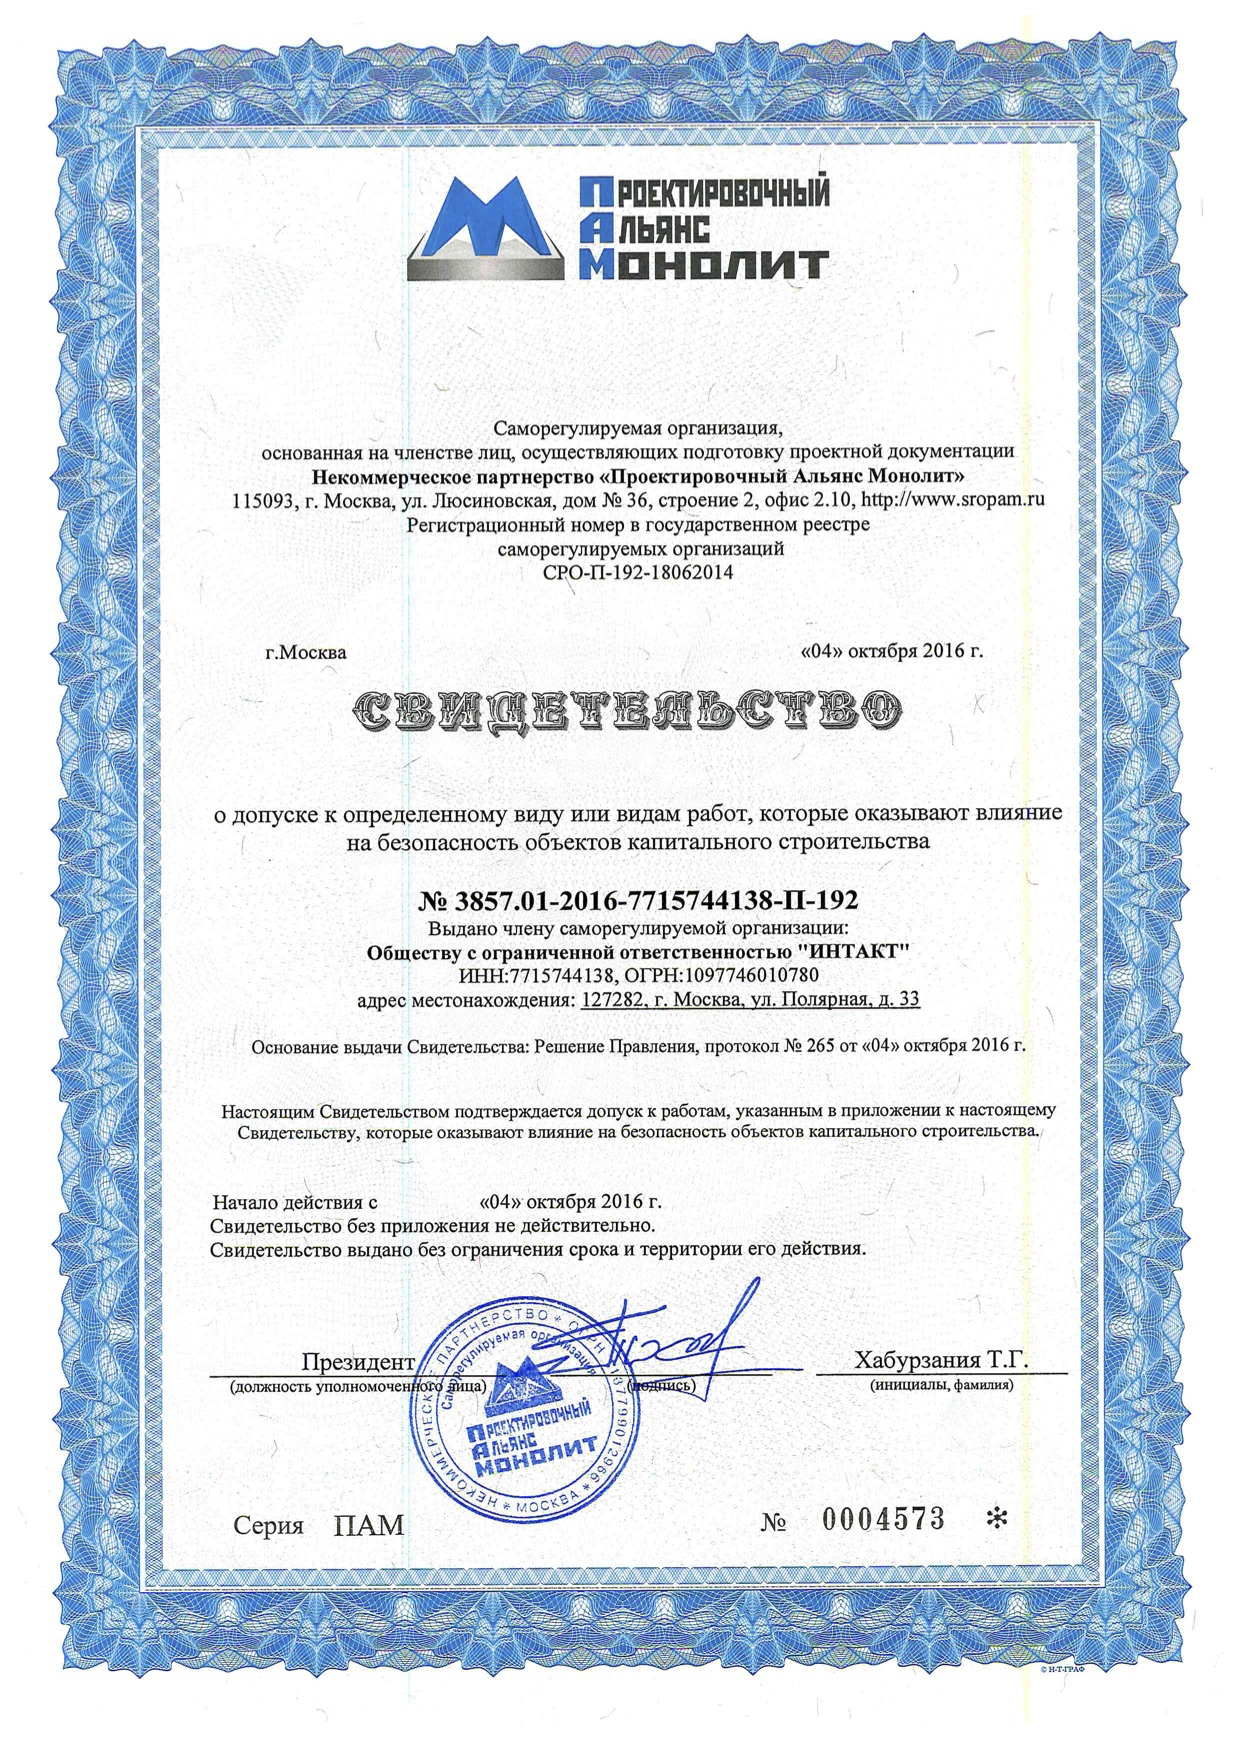 Self-Regulatory Organization (SRO) Certificate for project documentation